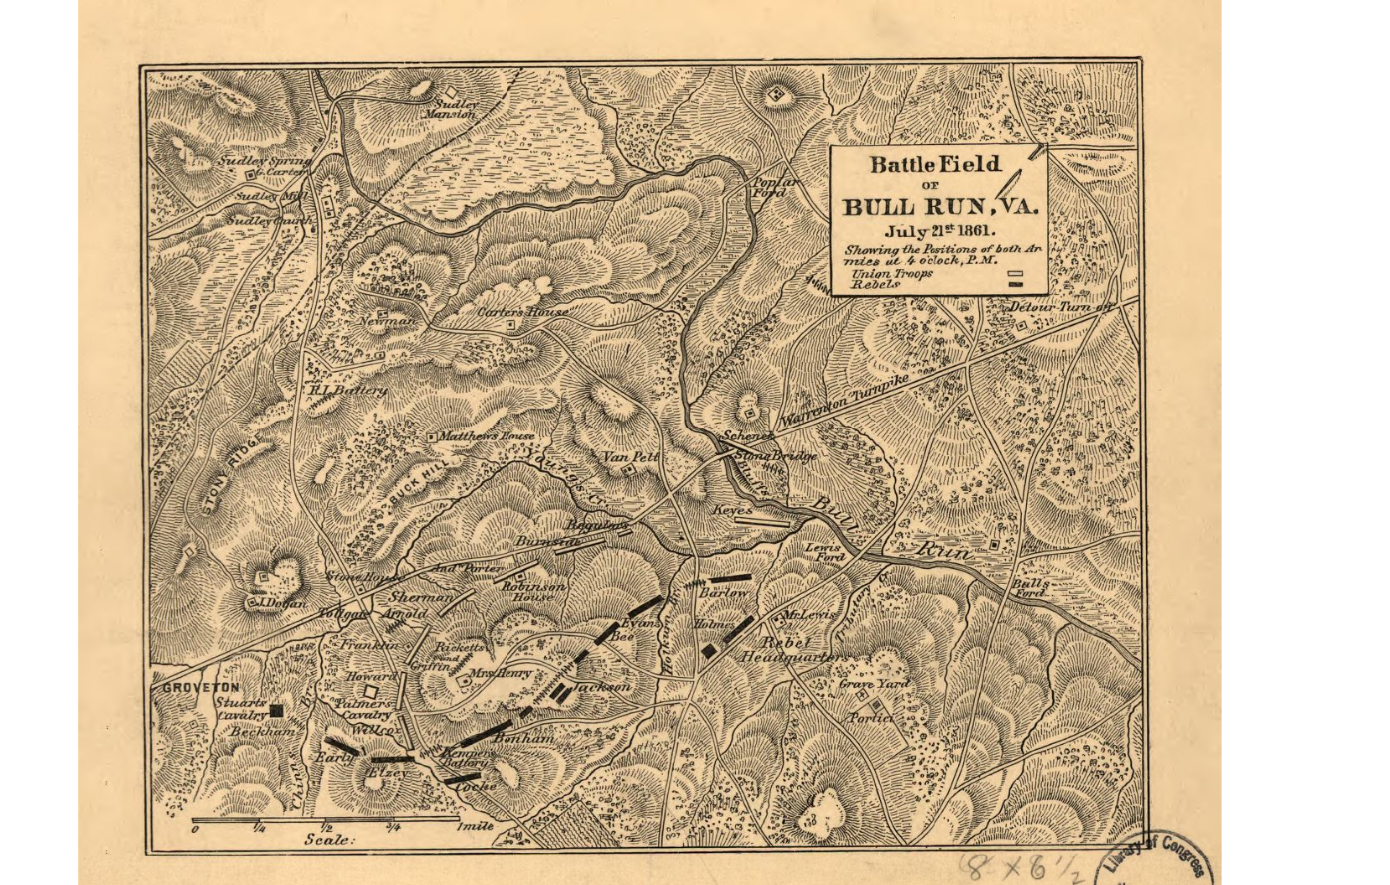 Bull Run, 1st battle of, map from LOC